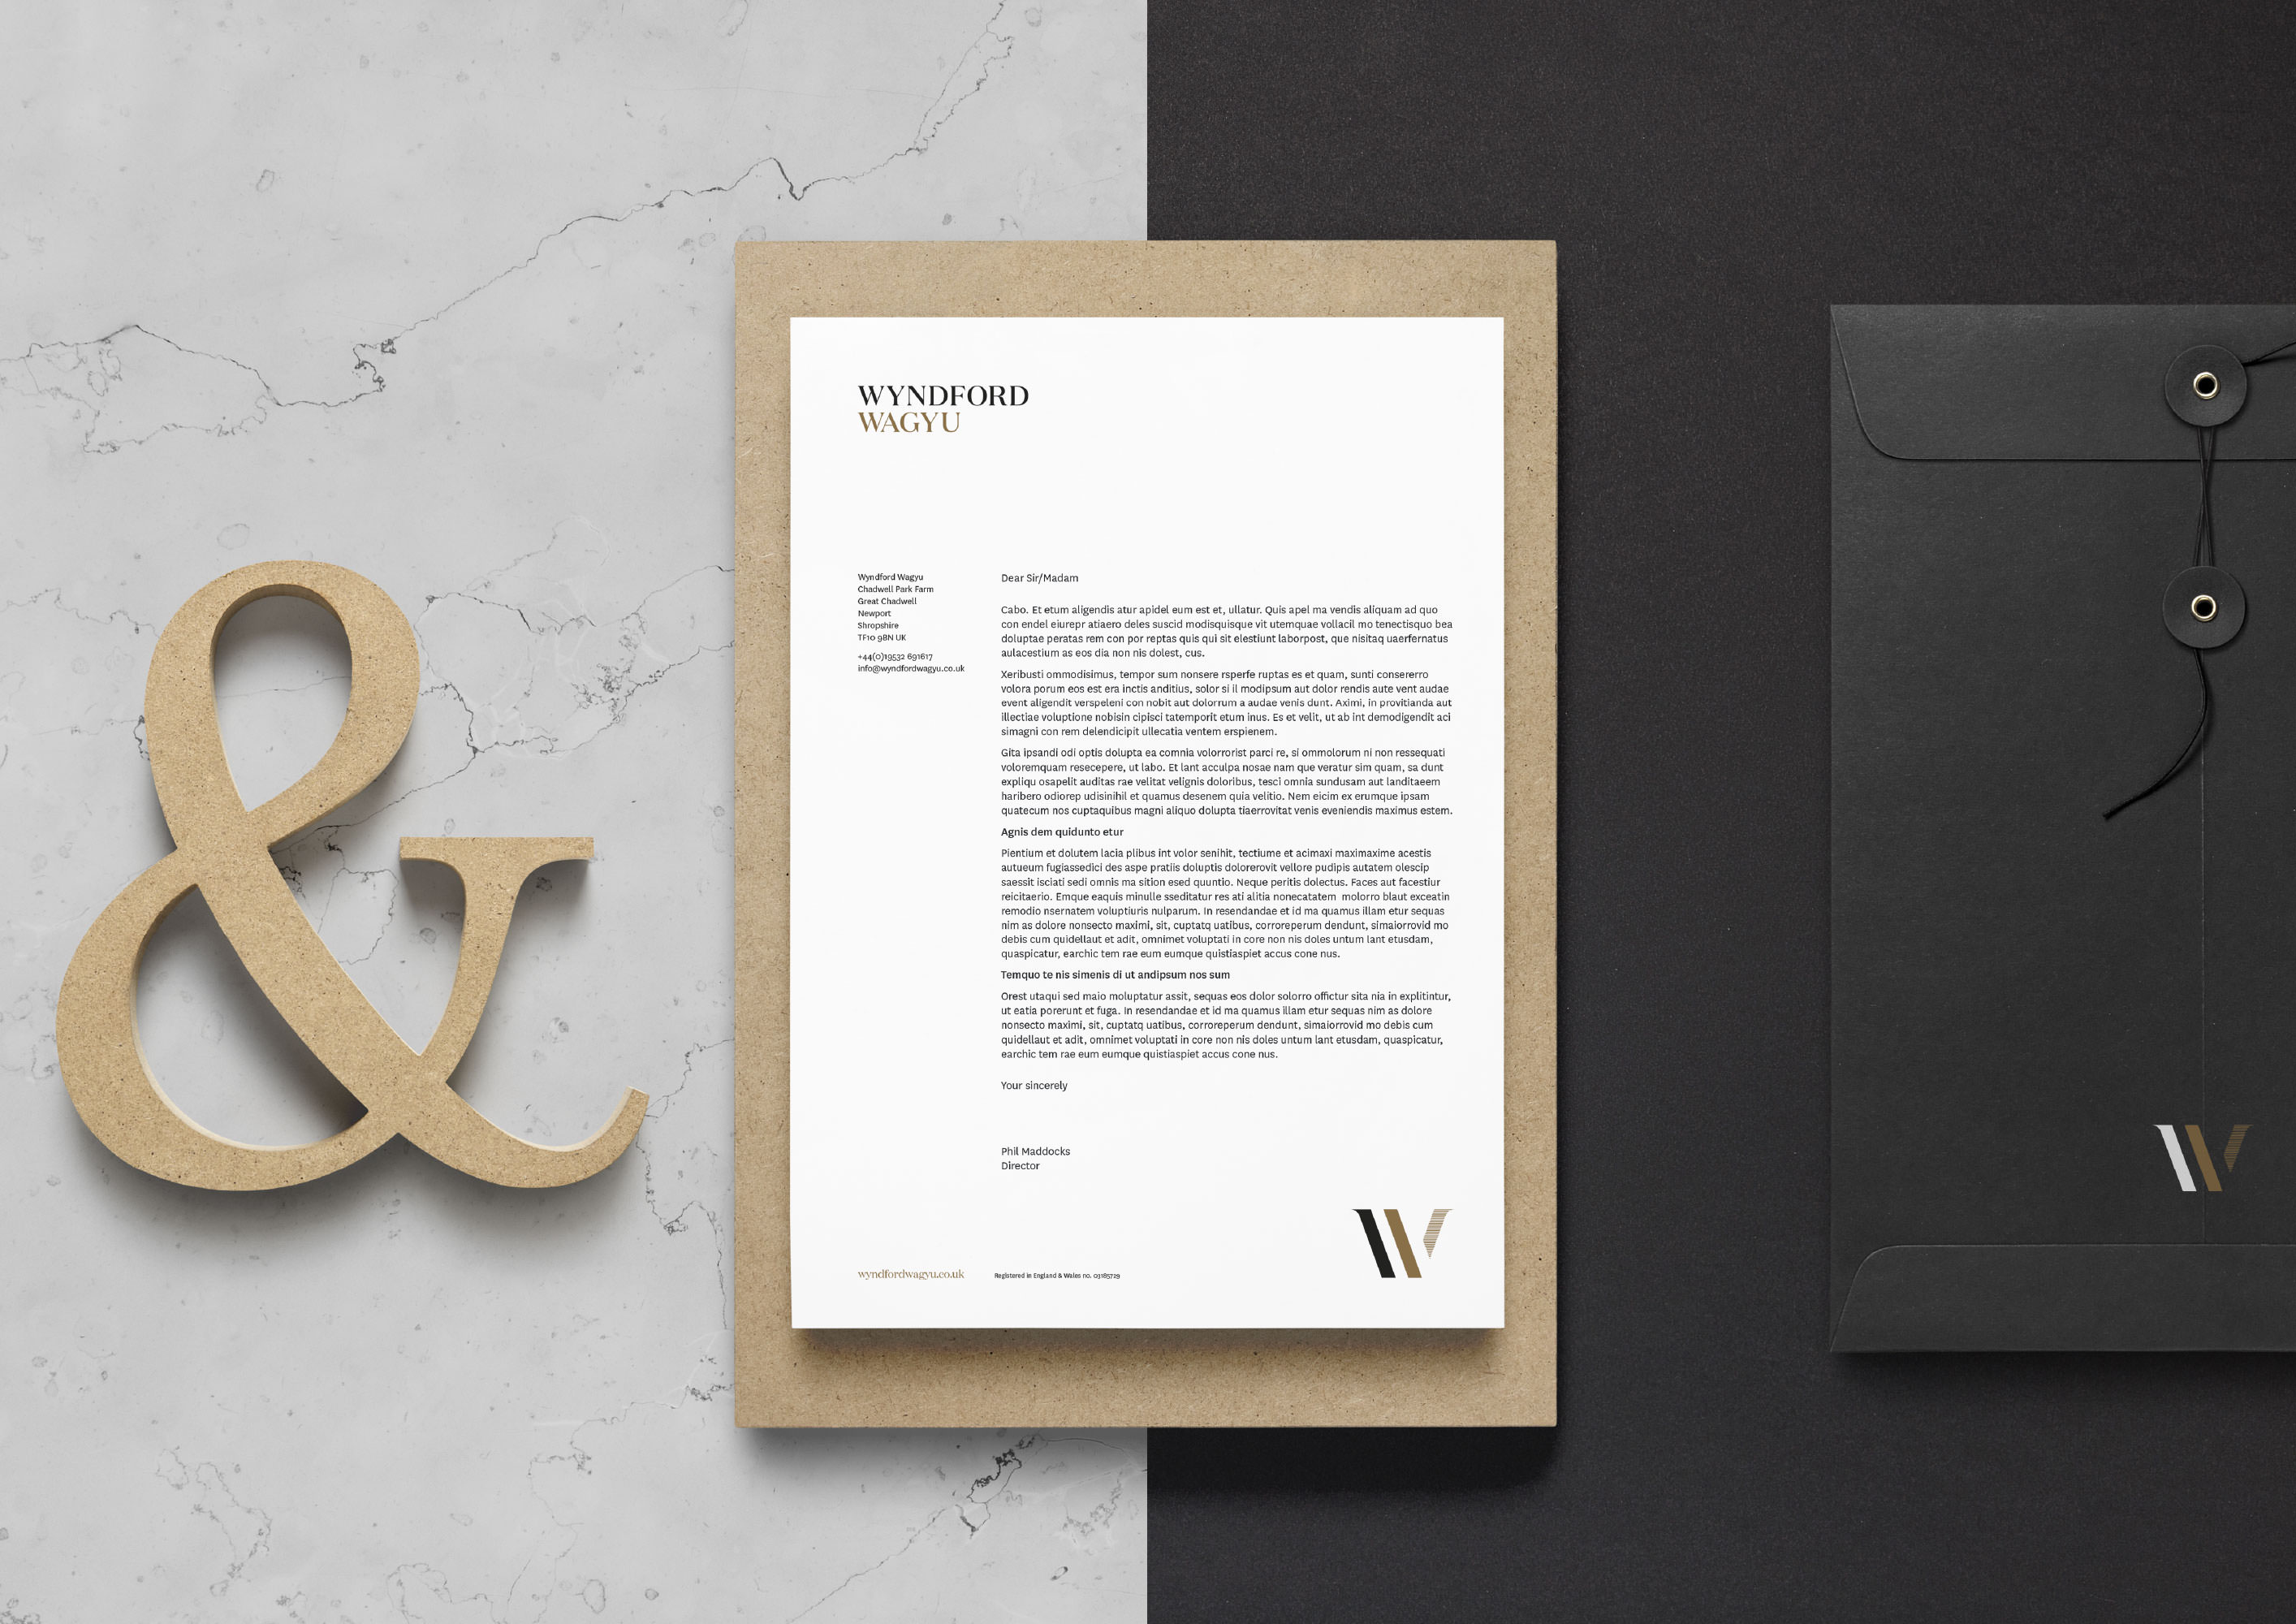 wyndford-wagyu-stationery